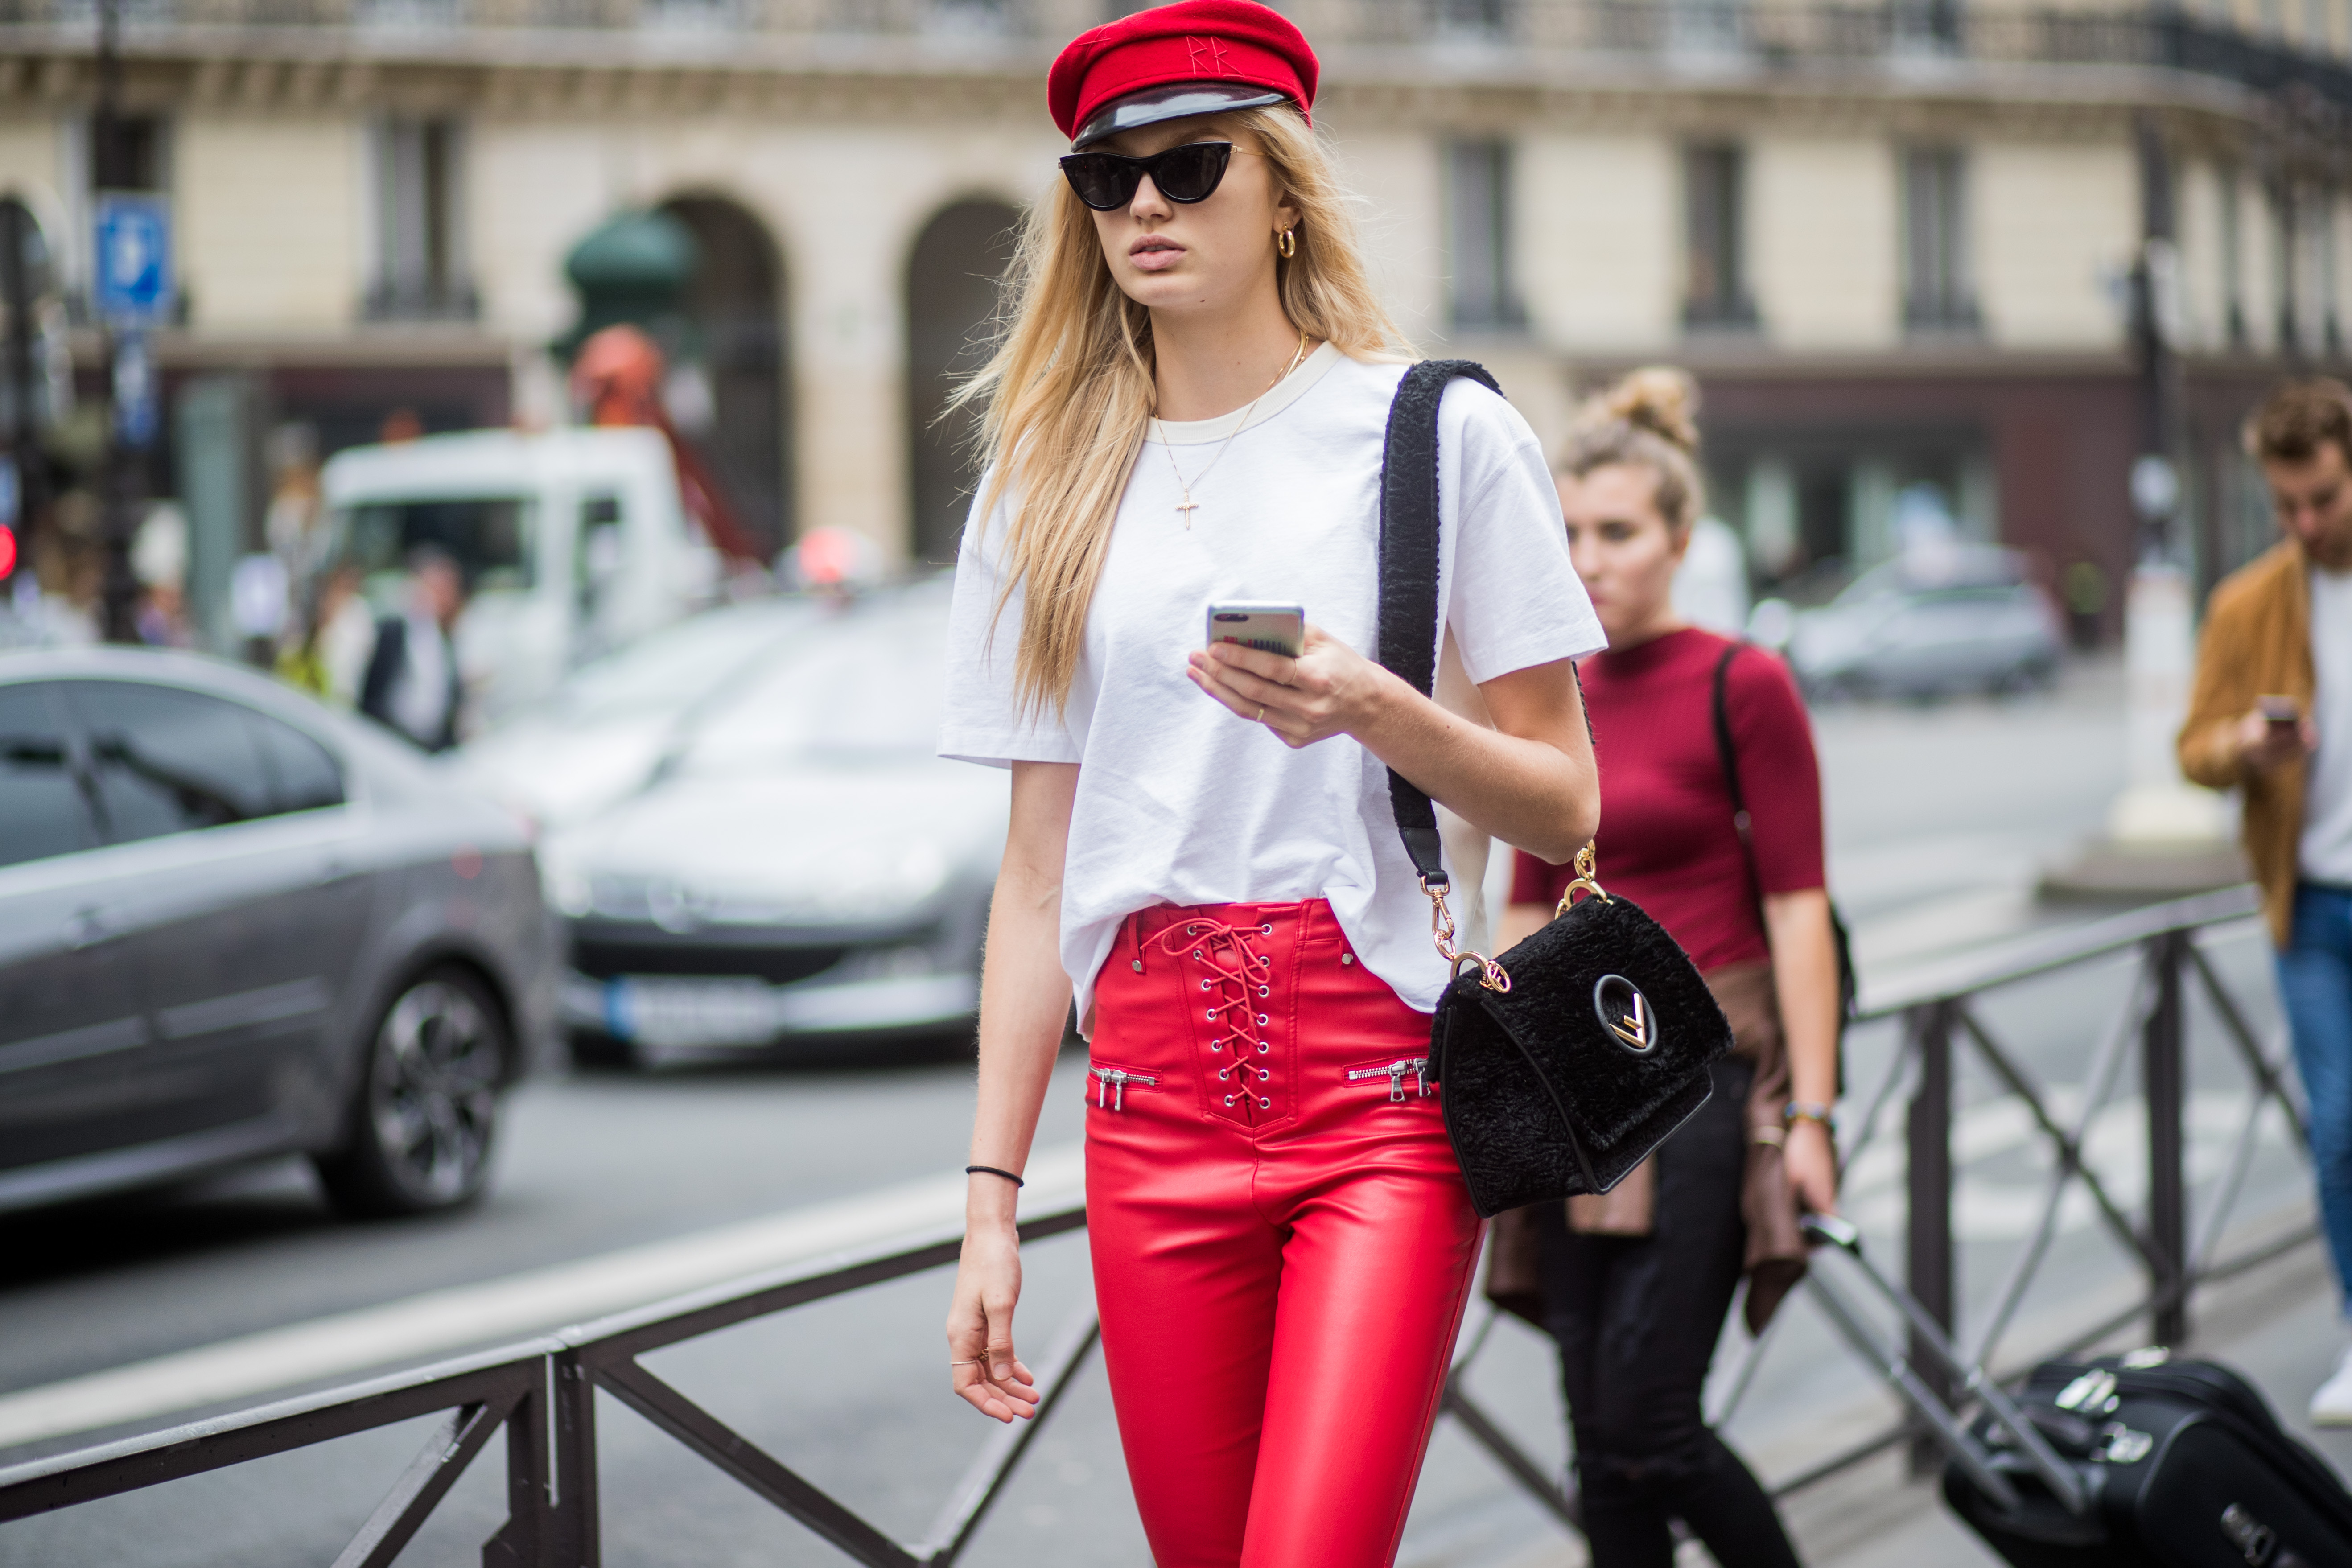 PARIS, FRANCE - SEPTEMBER 28: Model Romee Strijd wearing red flat hat, white tshirt, Fendi bag, red leather pants, white boots is seen outside Balmain during Paris Fashion Week Spring/Summer 2018 on September 28, 2017 in Paris, France. (Photo by Christian Vierig/Getty Images)